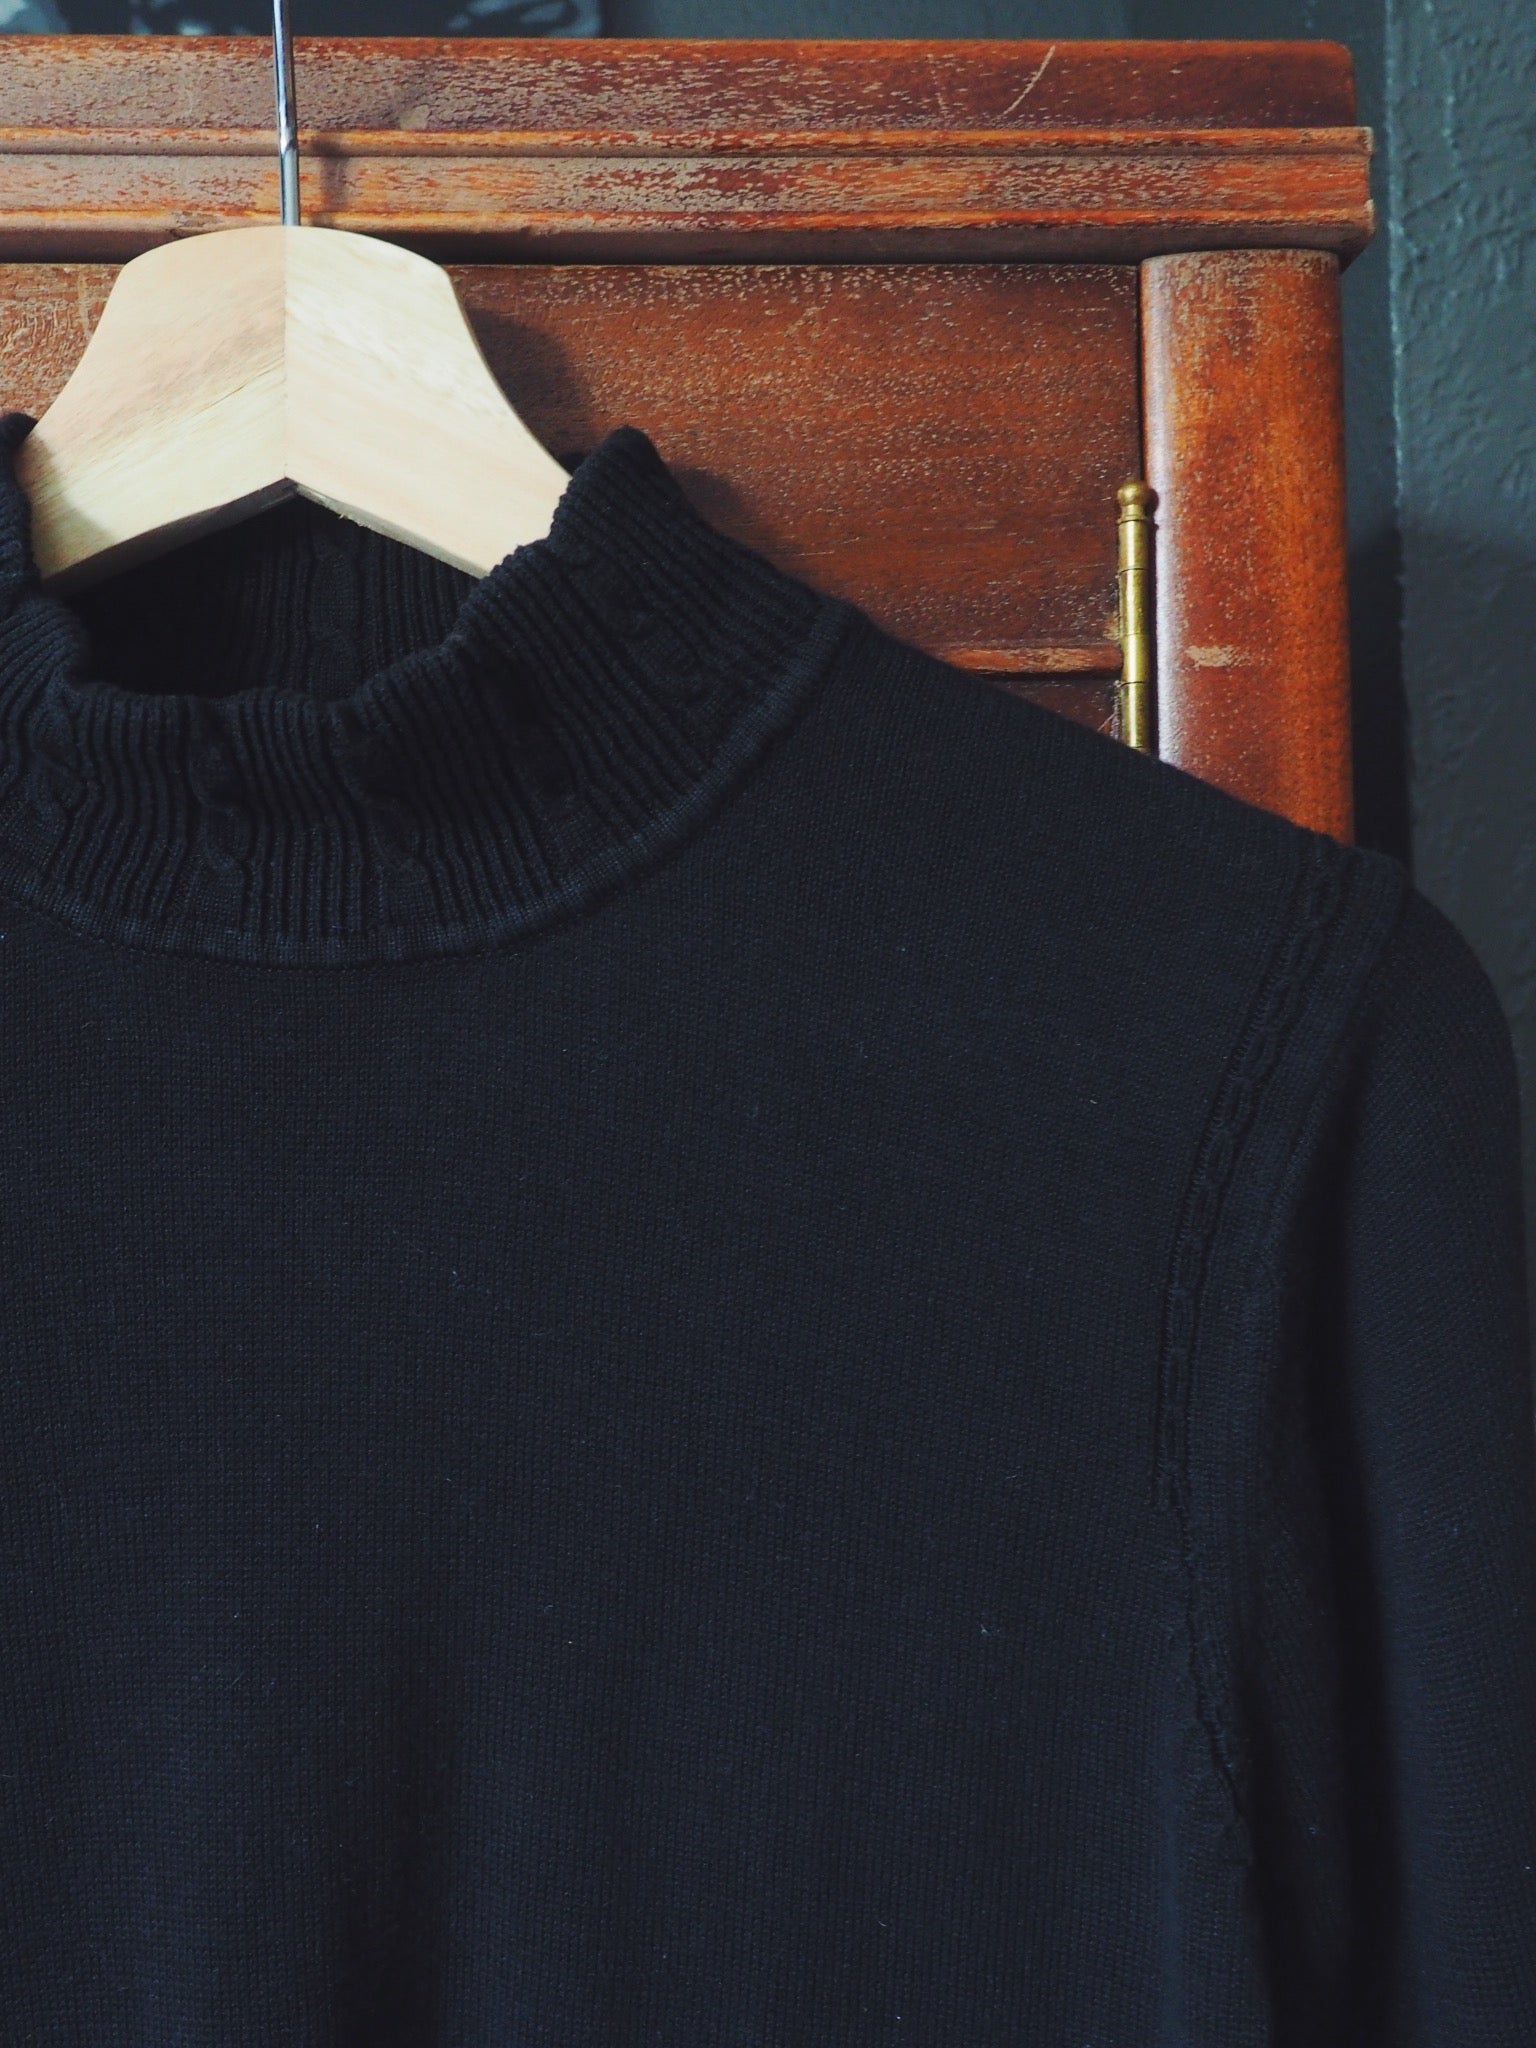 Vintage Orvis Silk Sweater